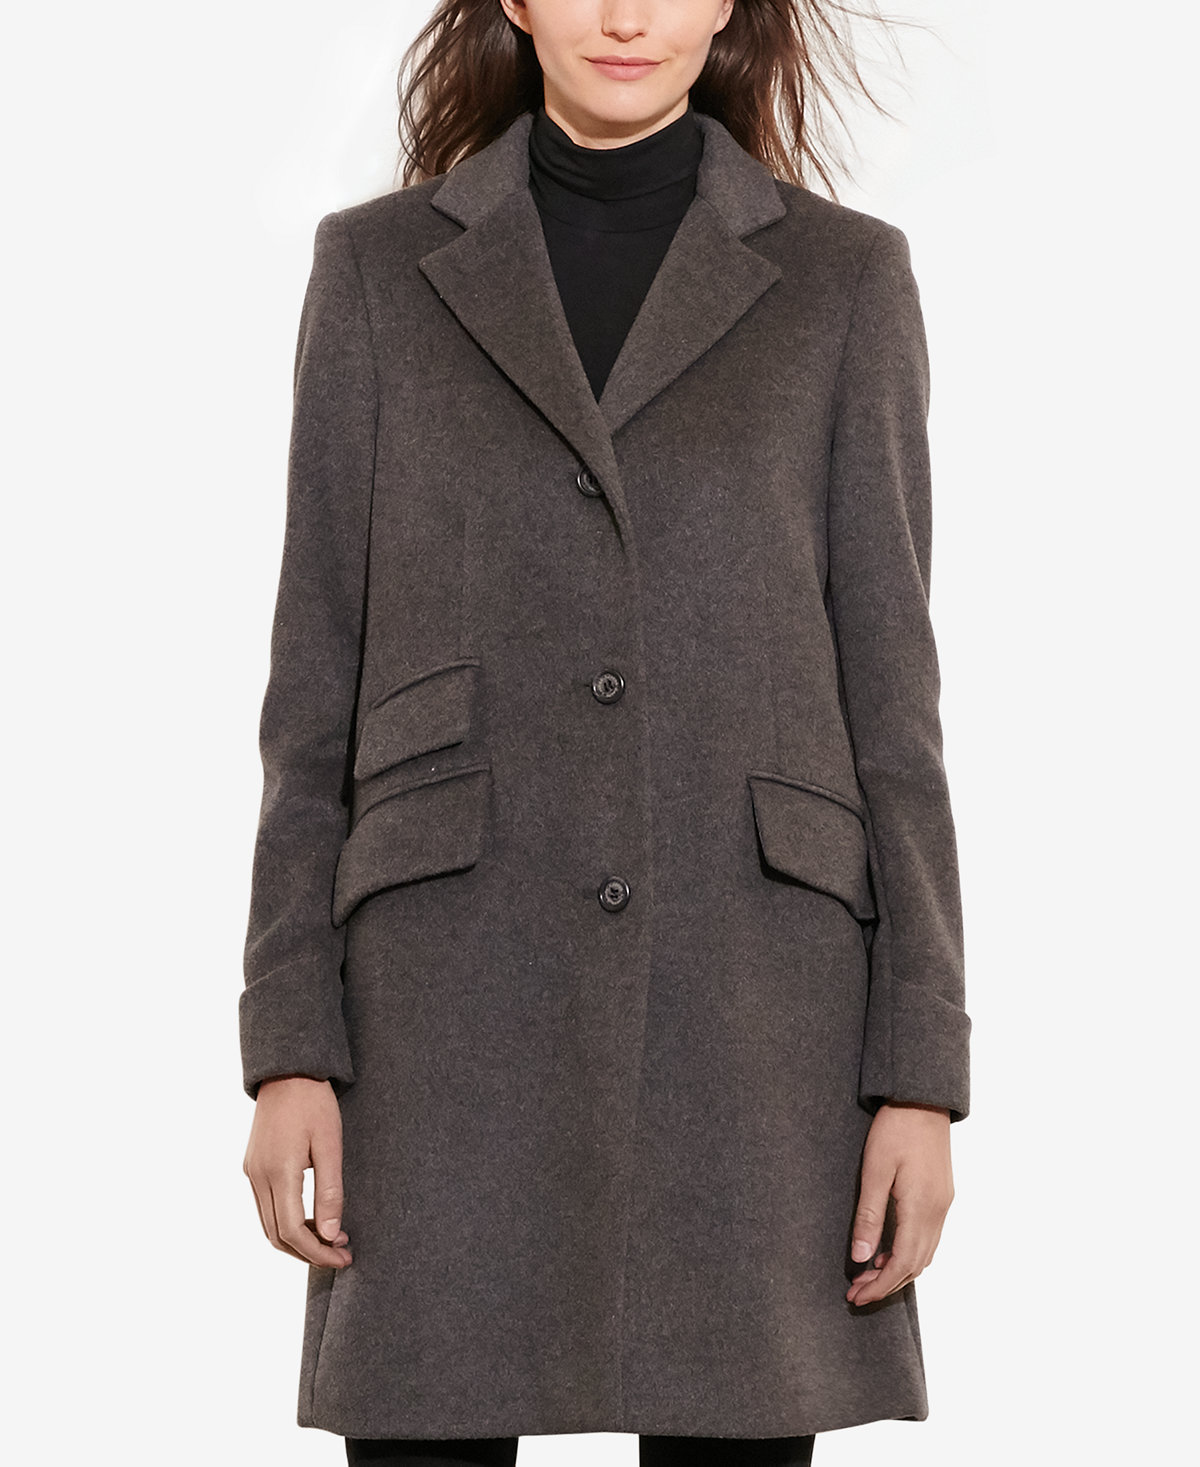 Macys petite coats — photo 9